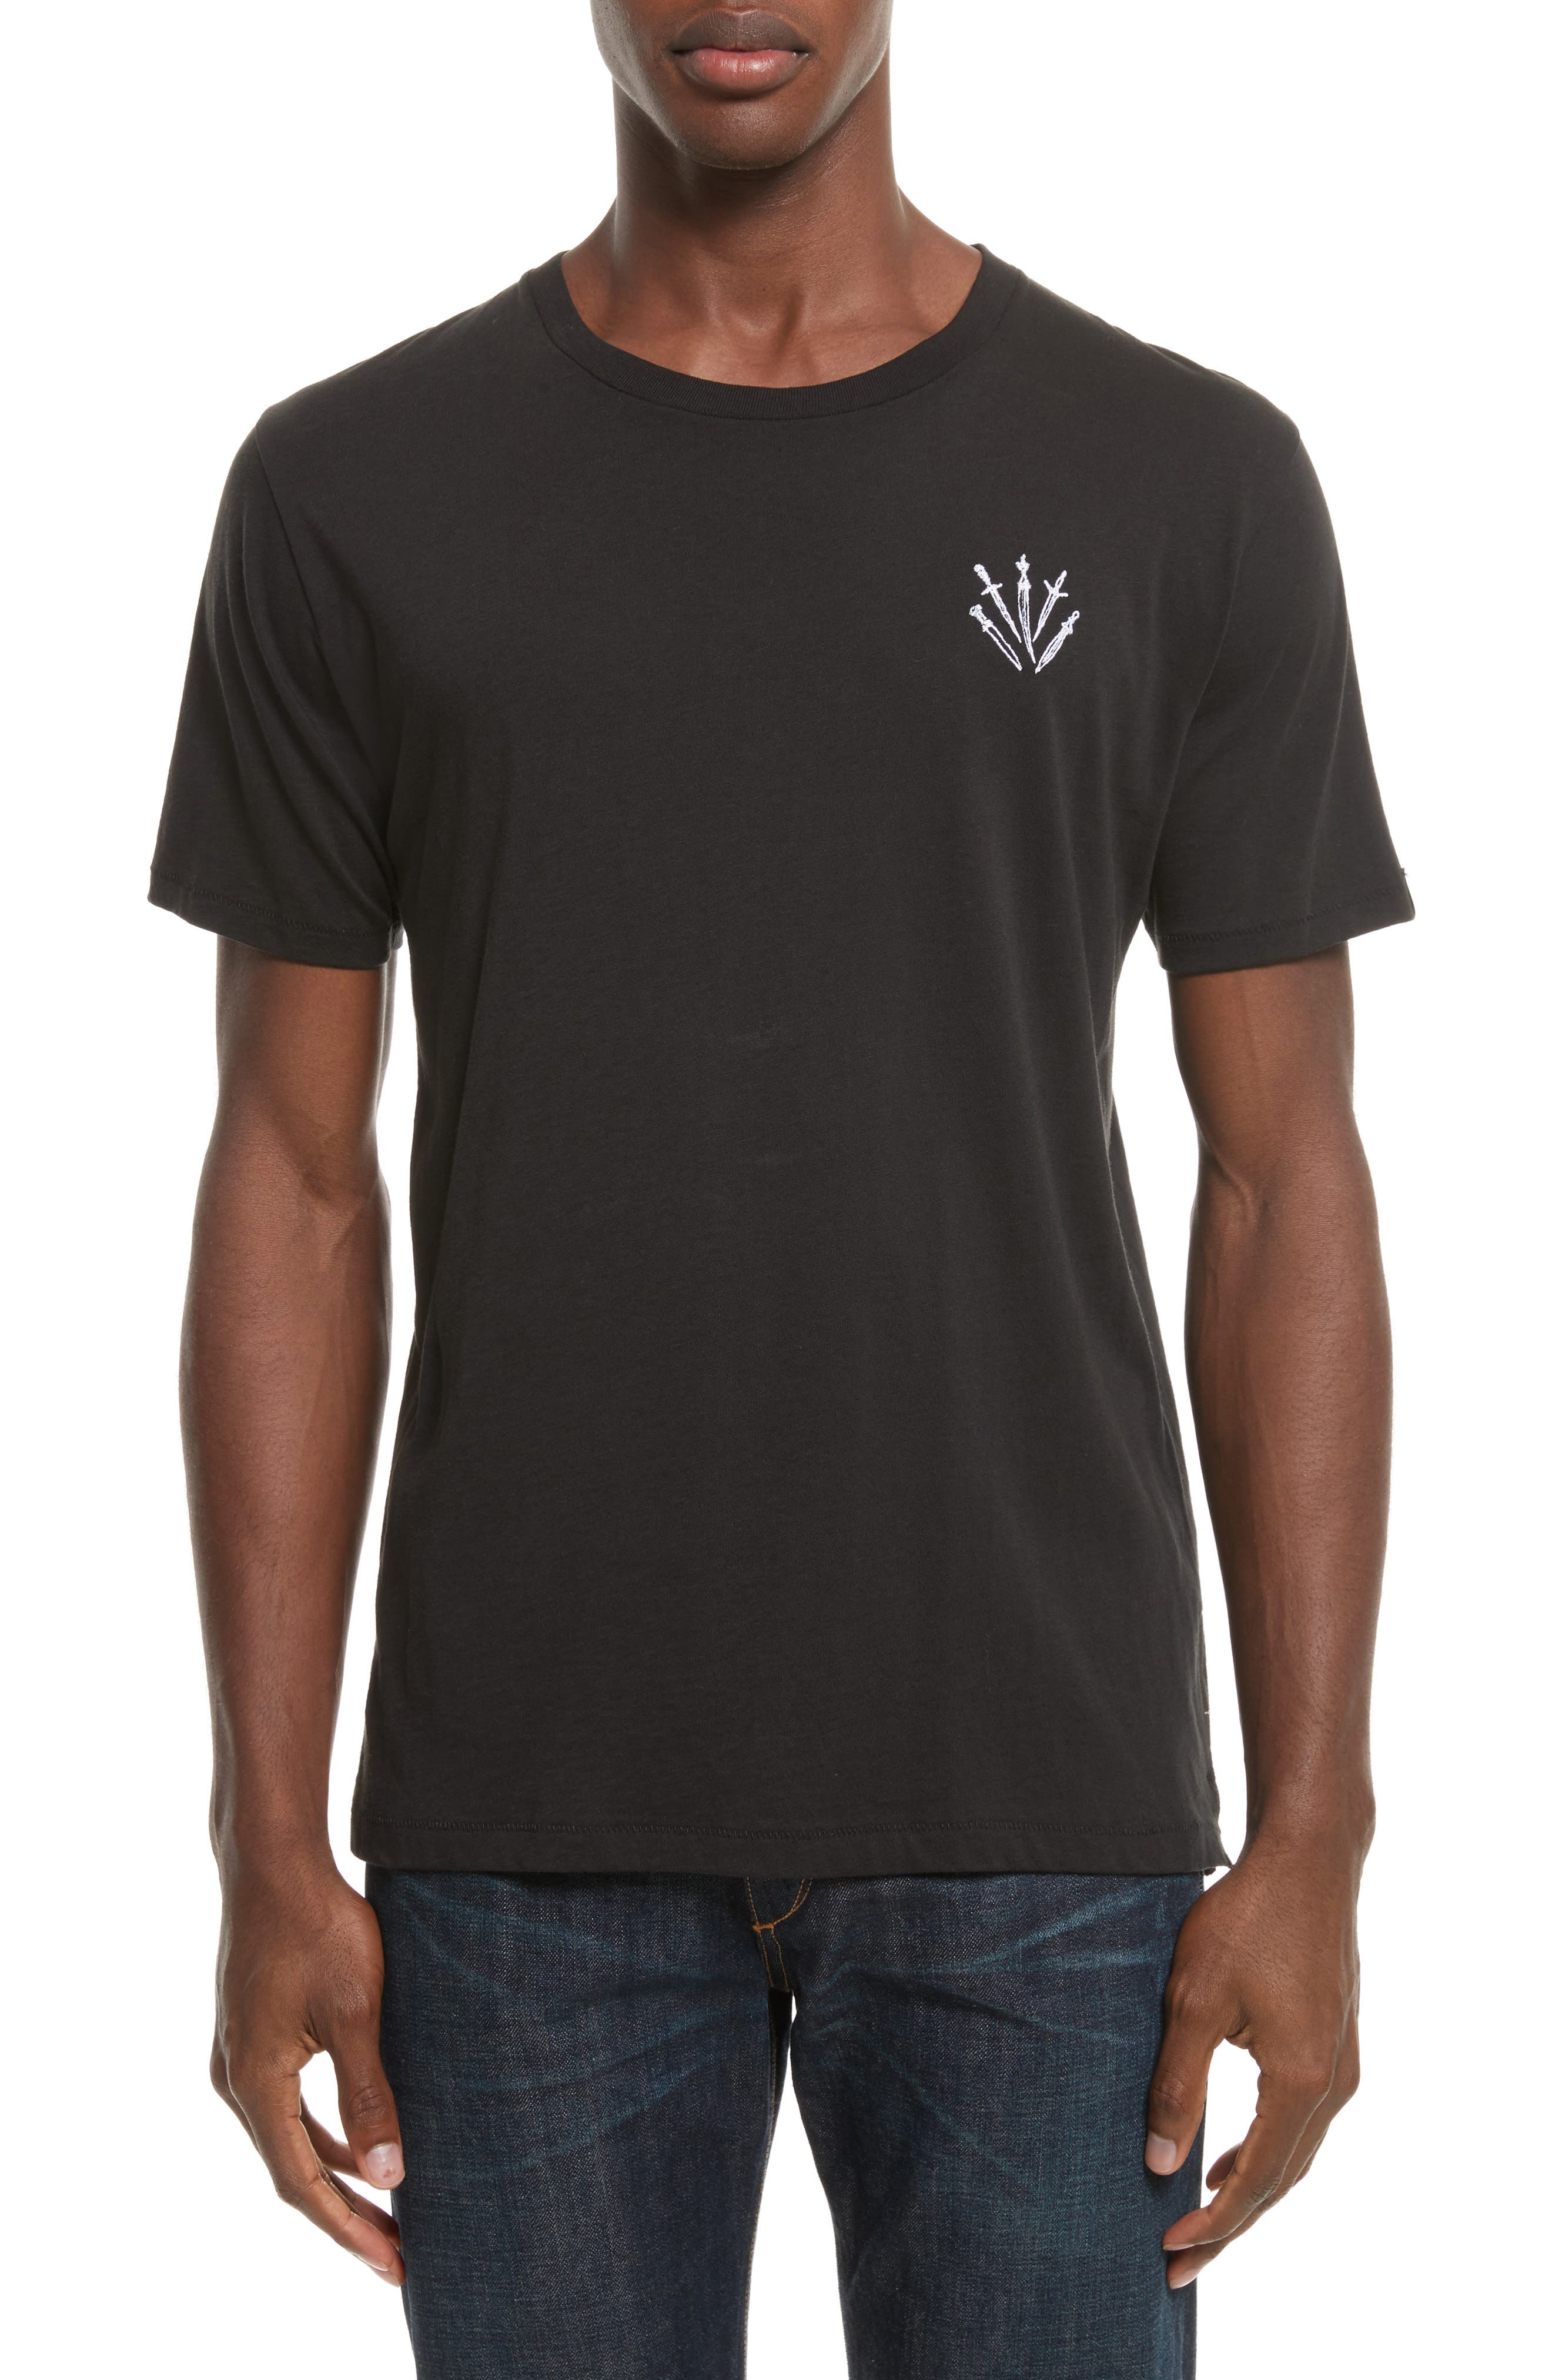 Dagger Embroidered T-Shirt,                             Main thumbnail 1, color,                             BLACK